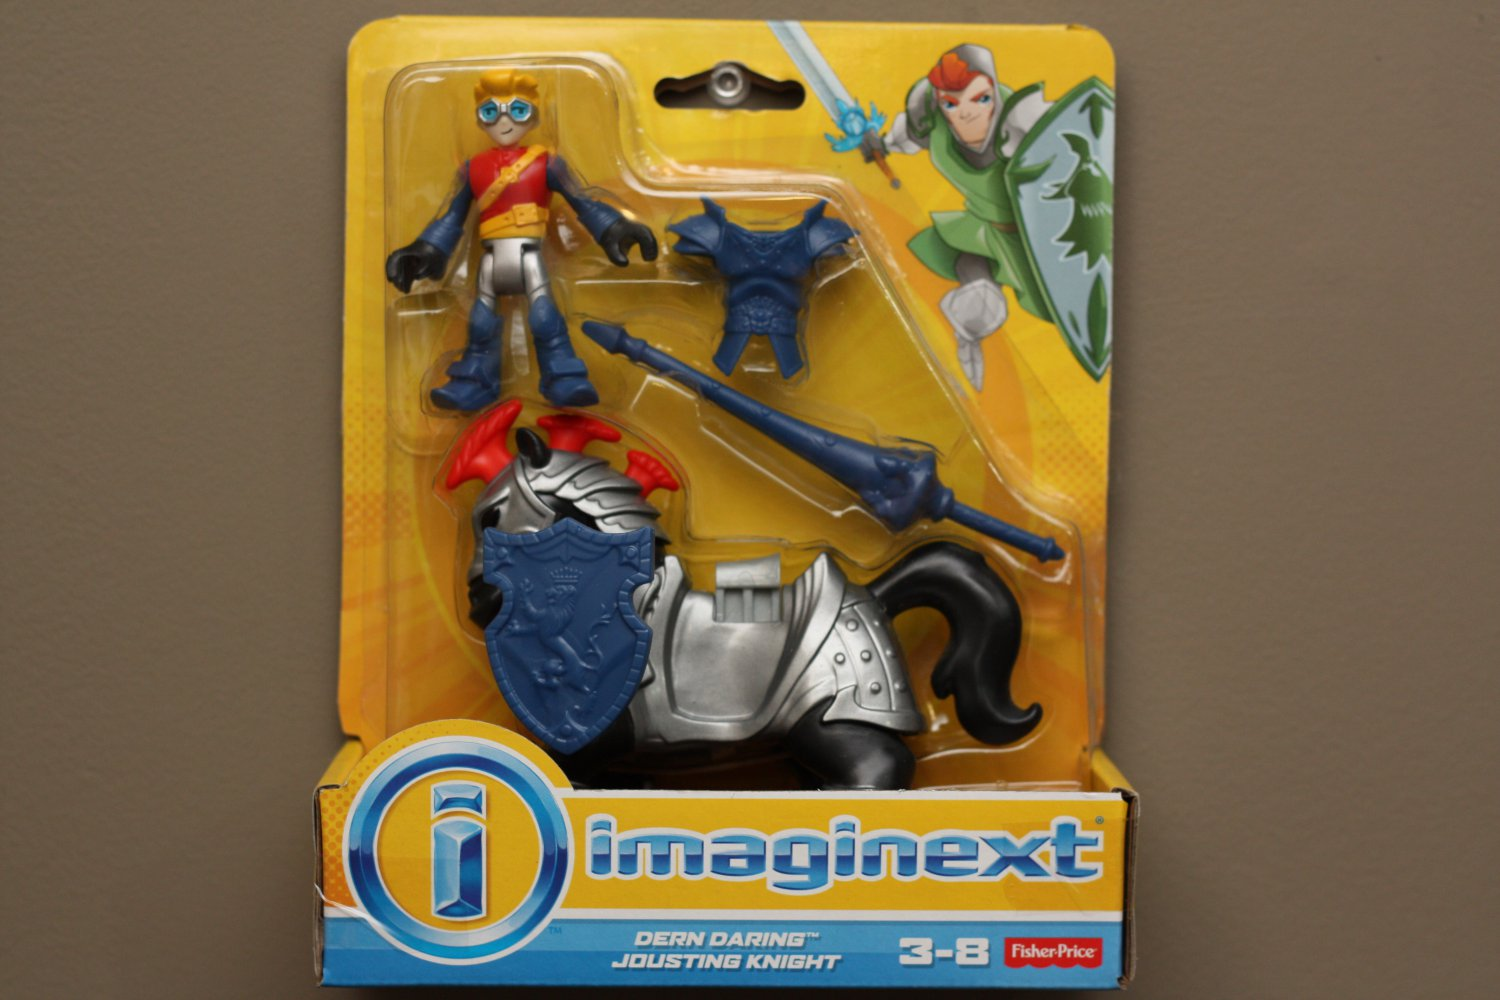 Fisher-Price Imaginext Dern Daring Jousting Knight Play Set